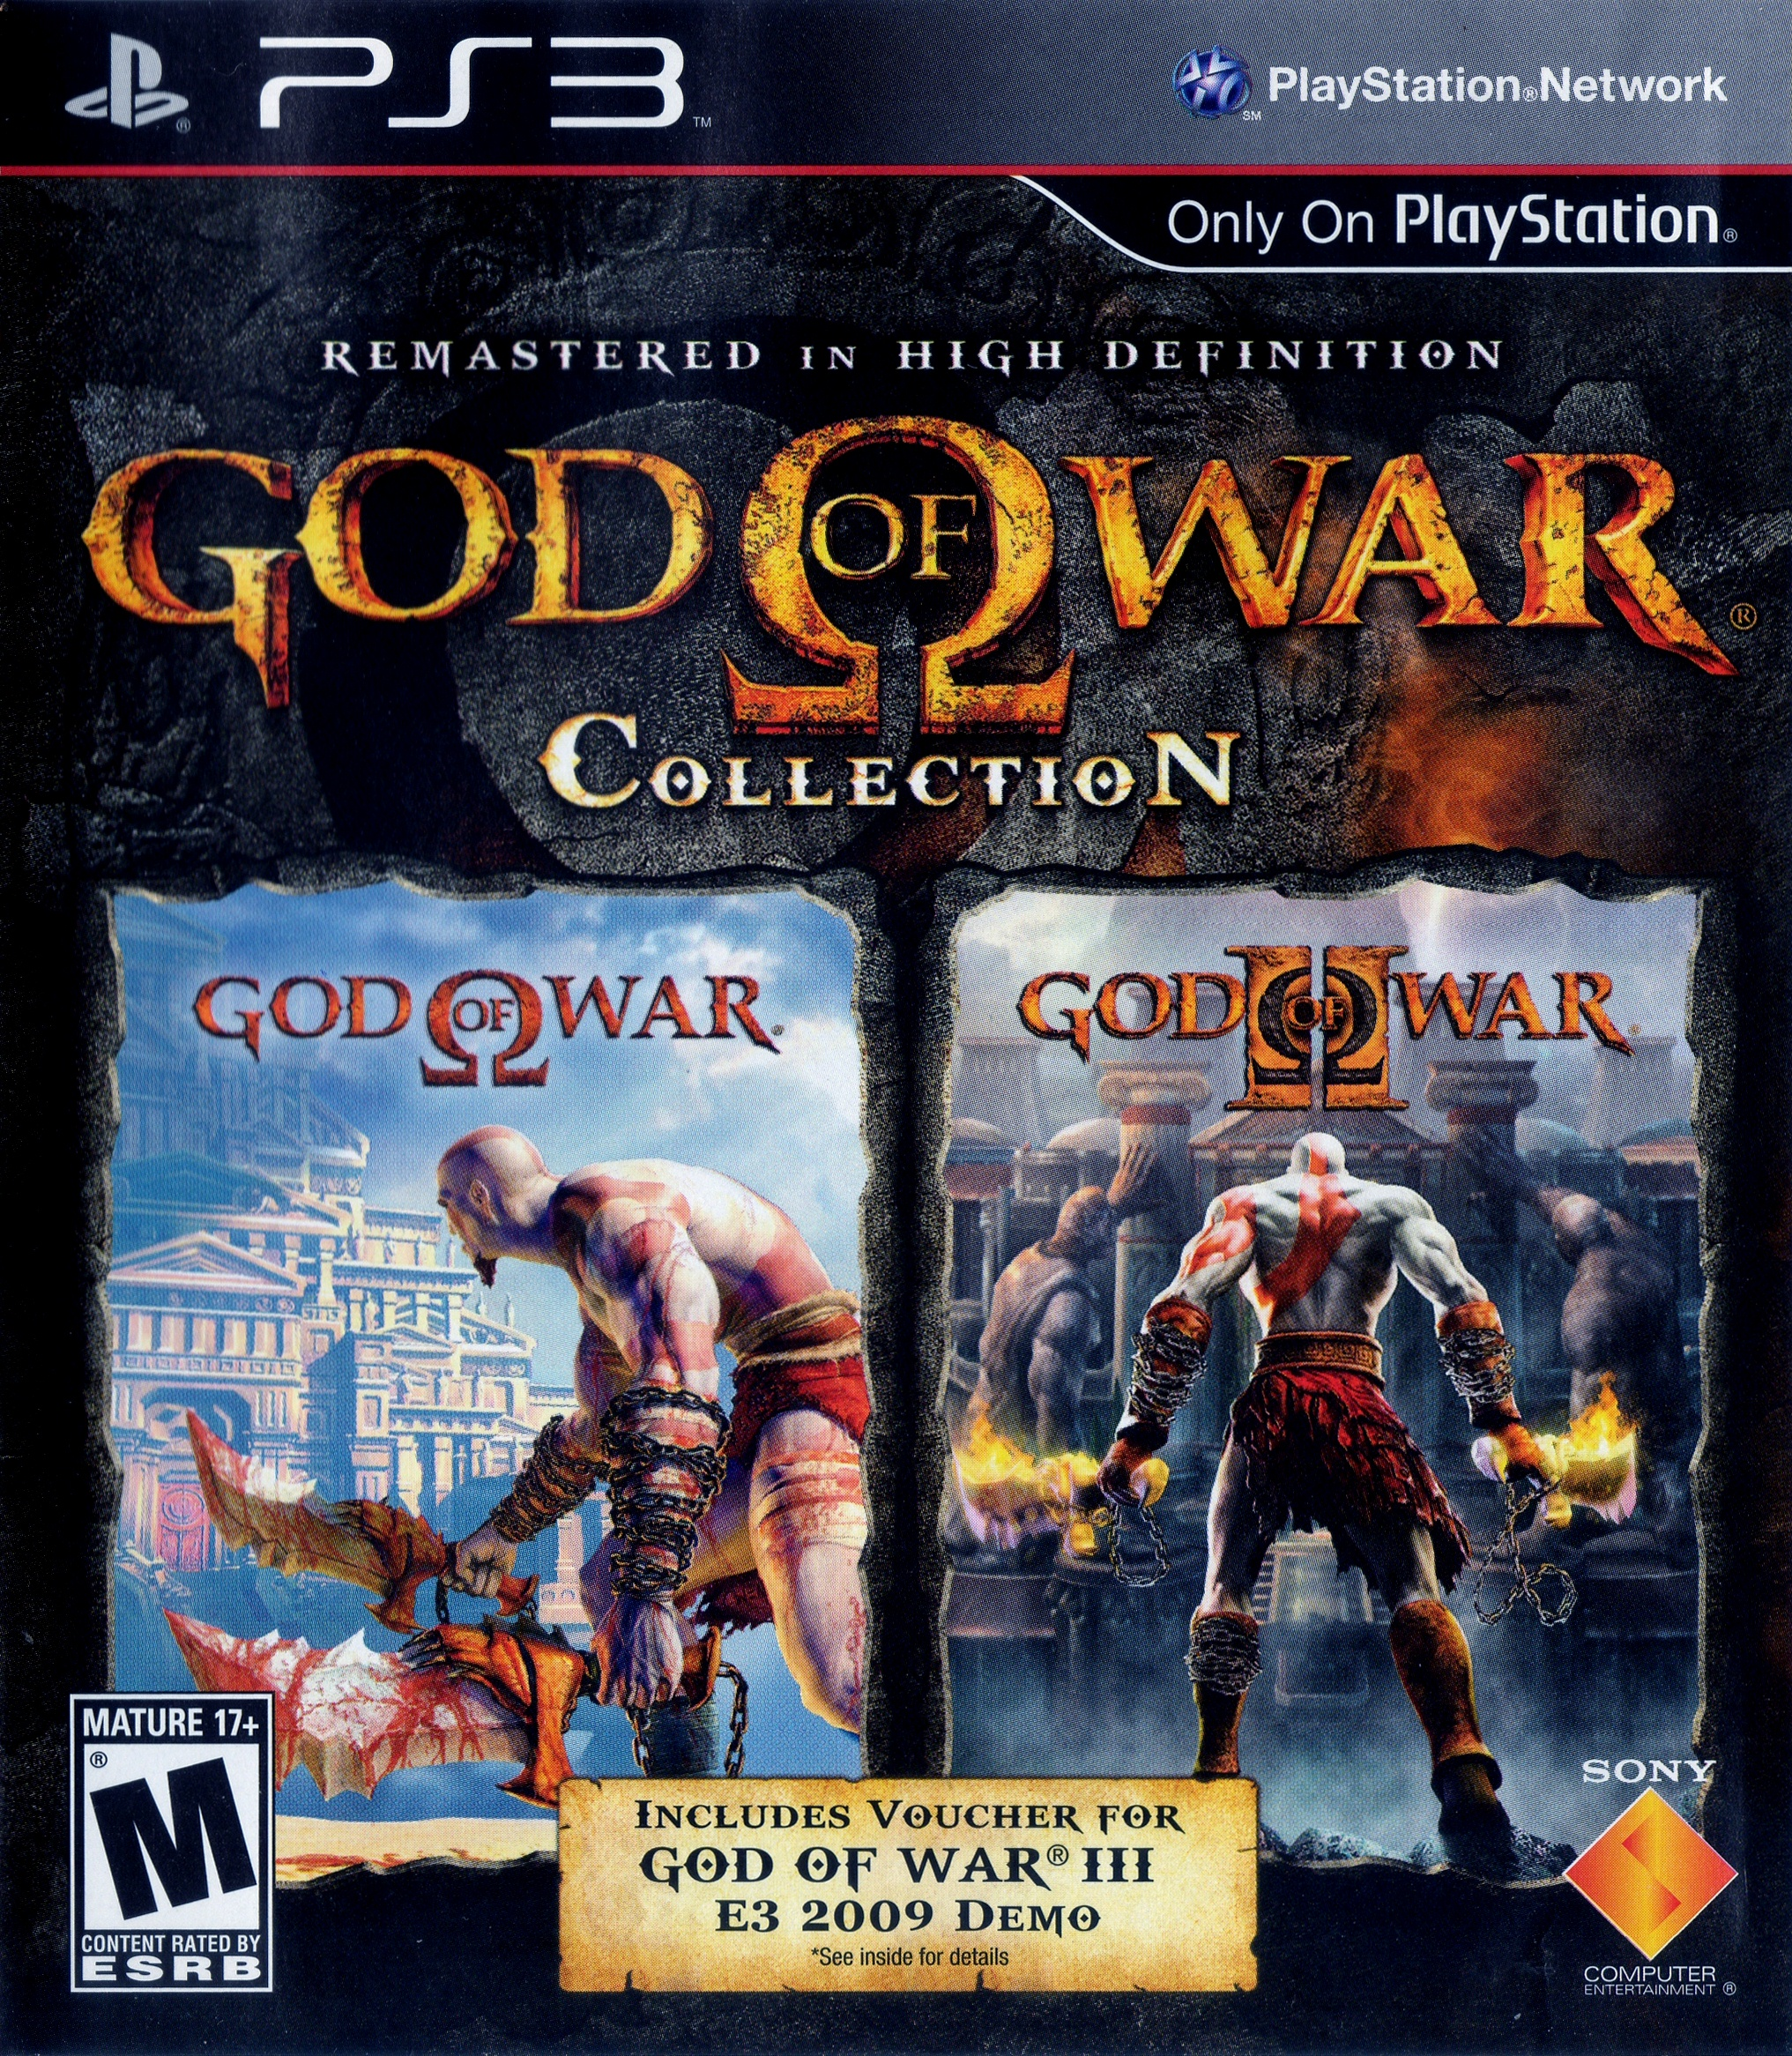 God of War Collection (video game, PS3, 2009) reviews & ratings